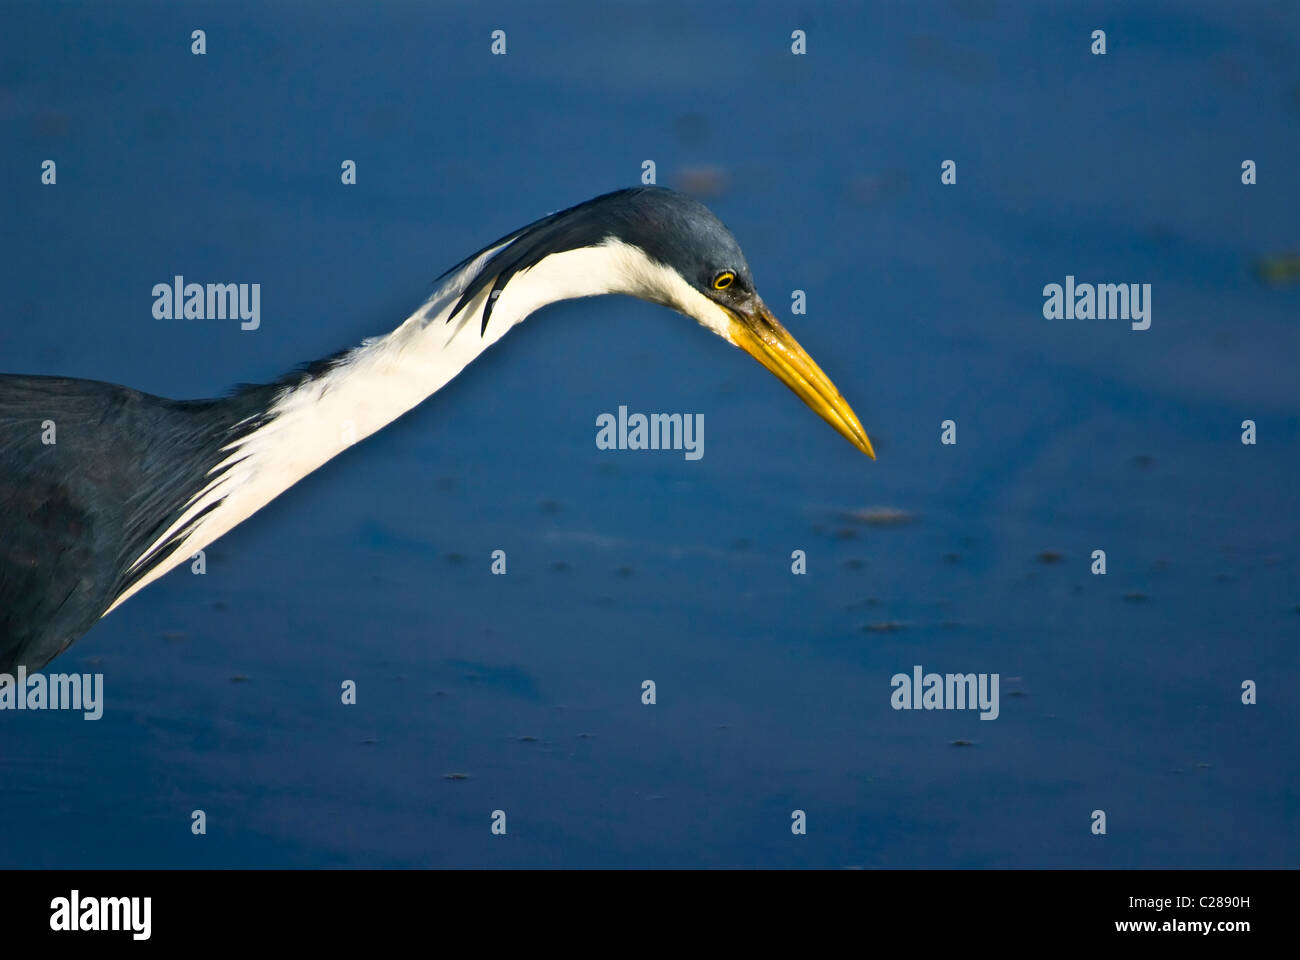 An elegant pied heron stalks fish whilst hunting in a still wetland. - Stock Image